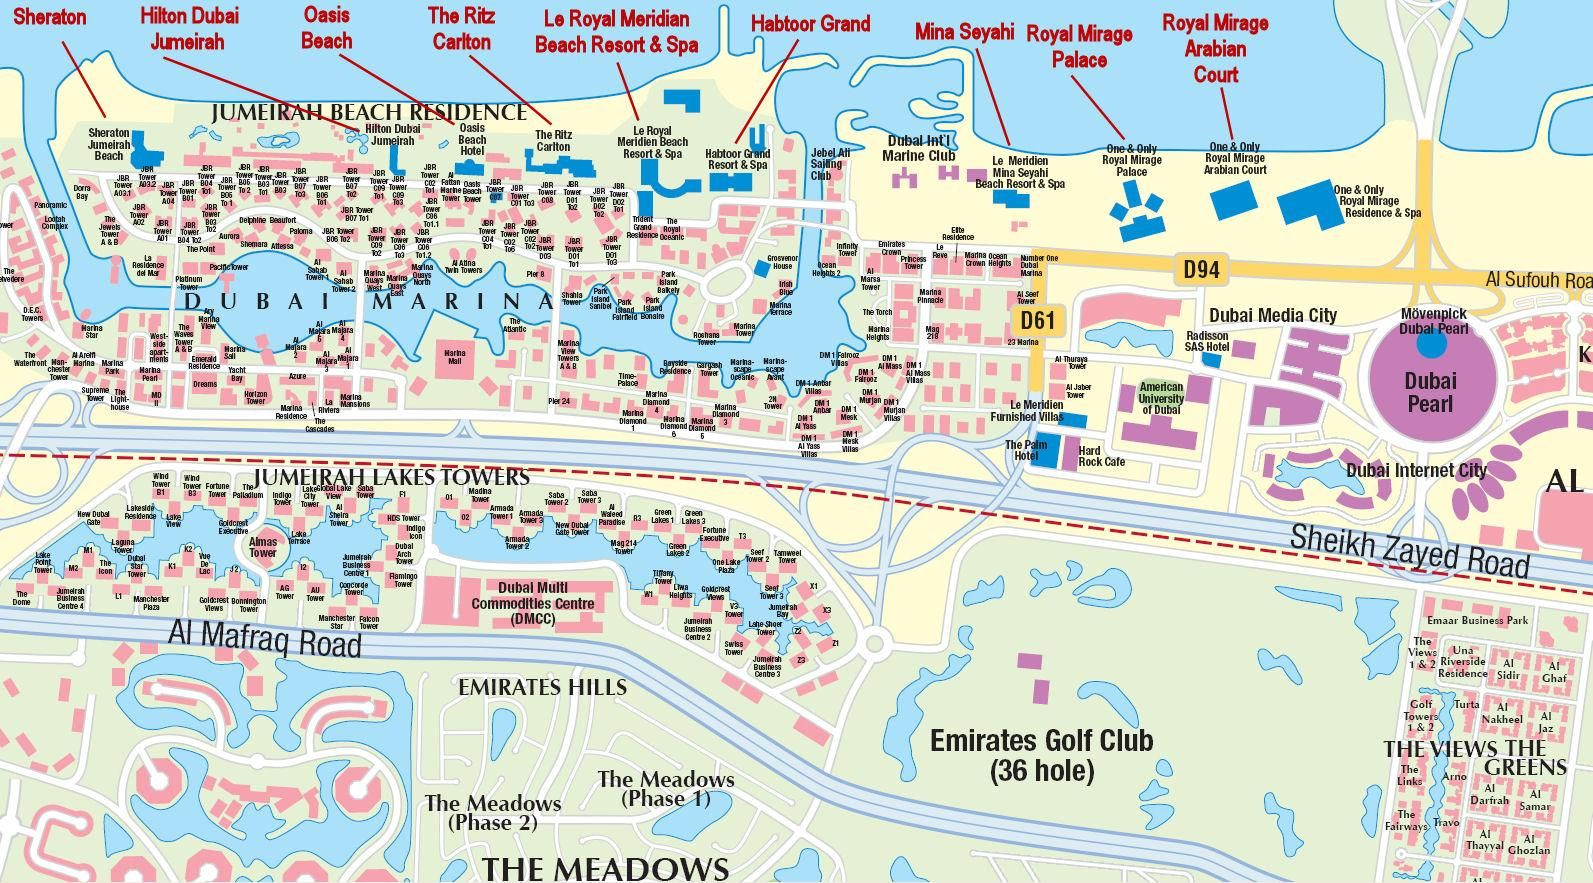 Dubai beach hotel map dubai mappery vacation spots uae dubai metro city streets hotels airport travel map info dubai city hotels and attractions map for travelers reference sciox Images